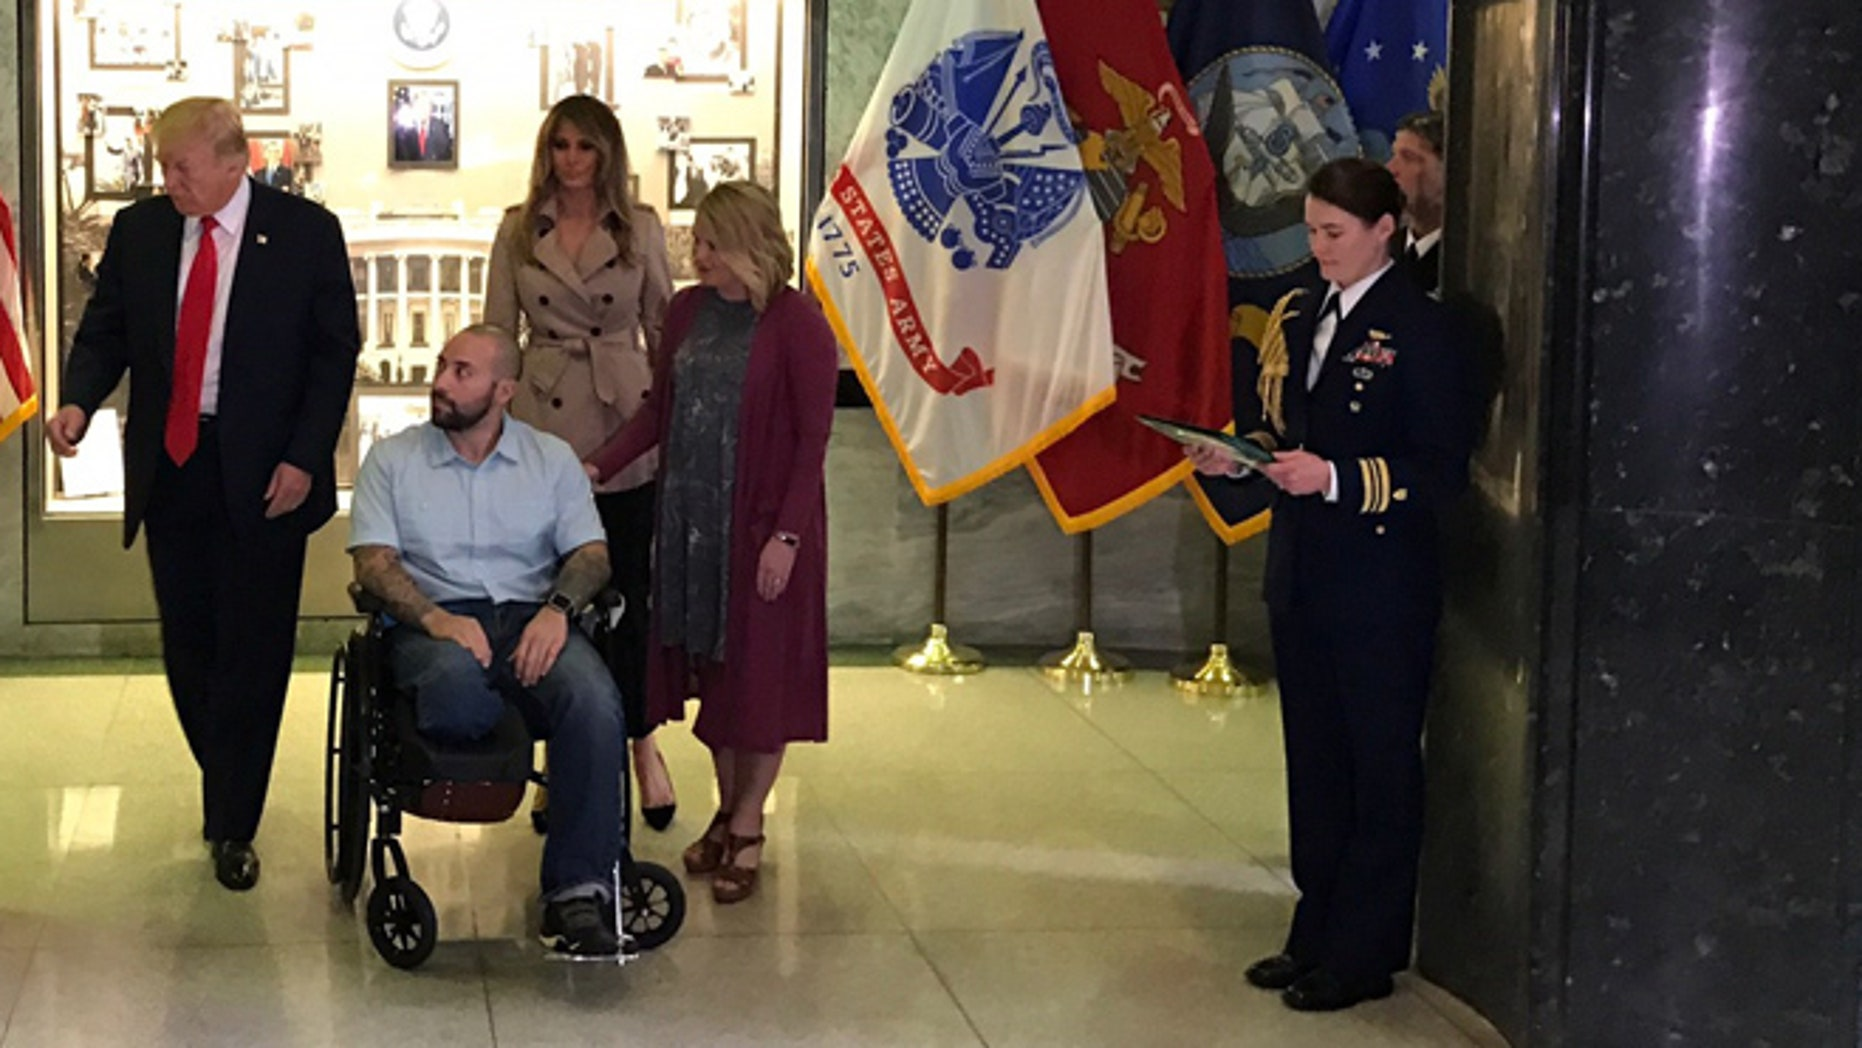 April 22, 2017: Donald Trump presents Purple Heart award to Army Sgt. Alvaro Barrietos. First lady Melania Trump and wife Tammy Barrietos are behind, to Barrietos' left. Walter Reed National Medical Center, Bethesda, Md. (White House submitted photo.)